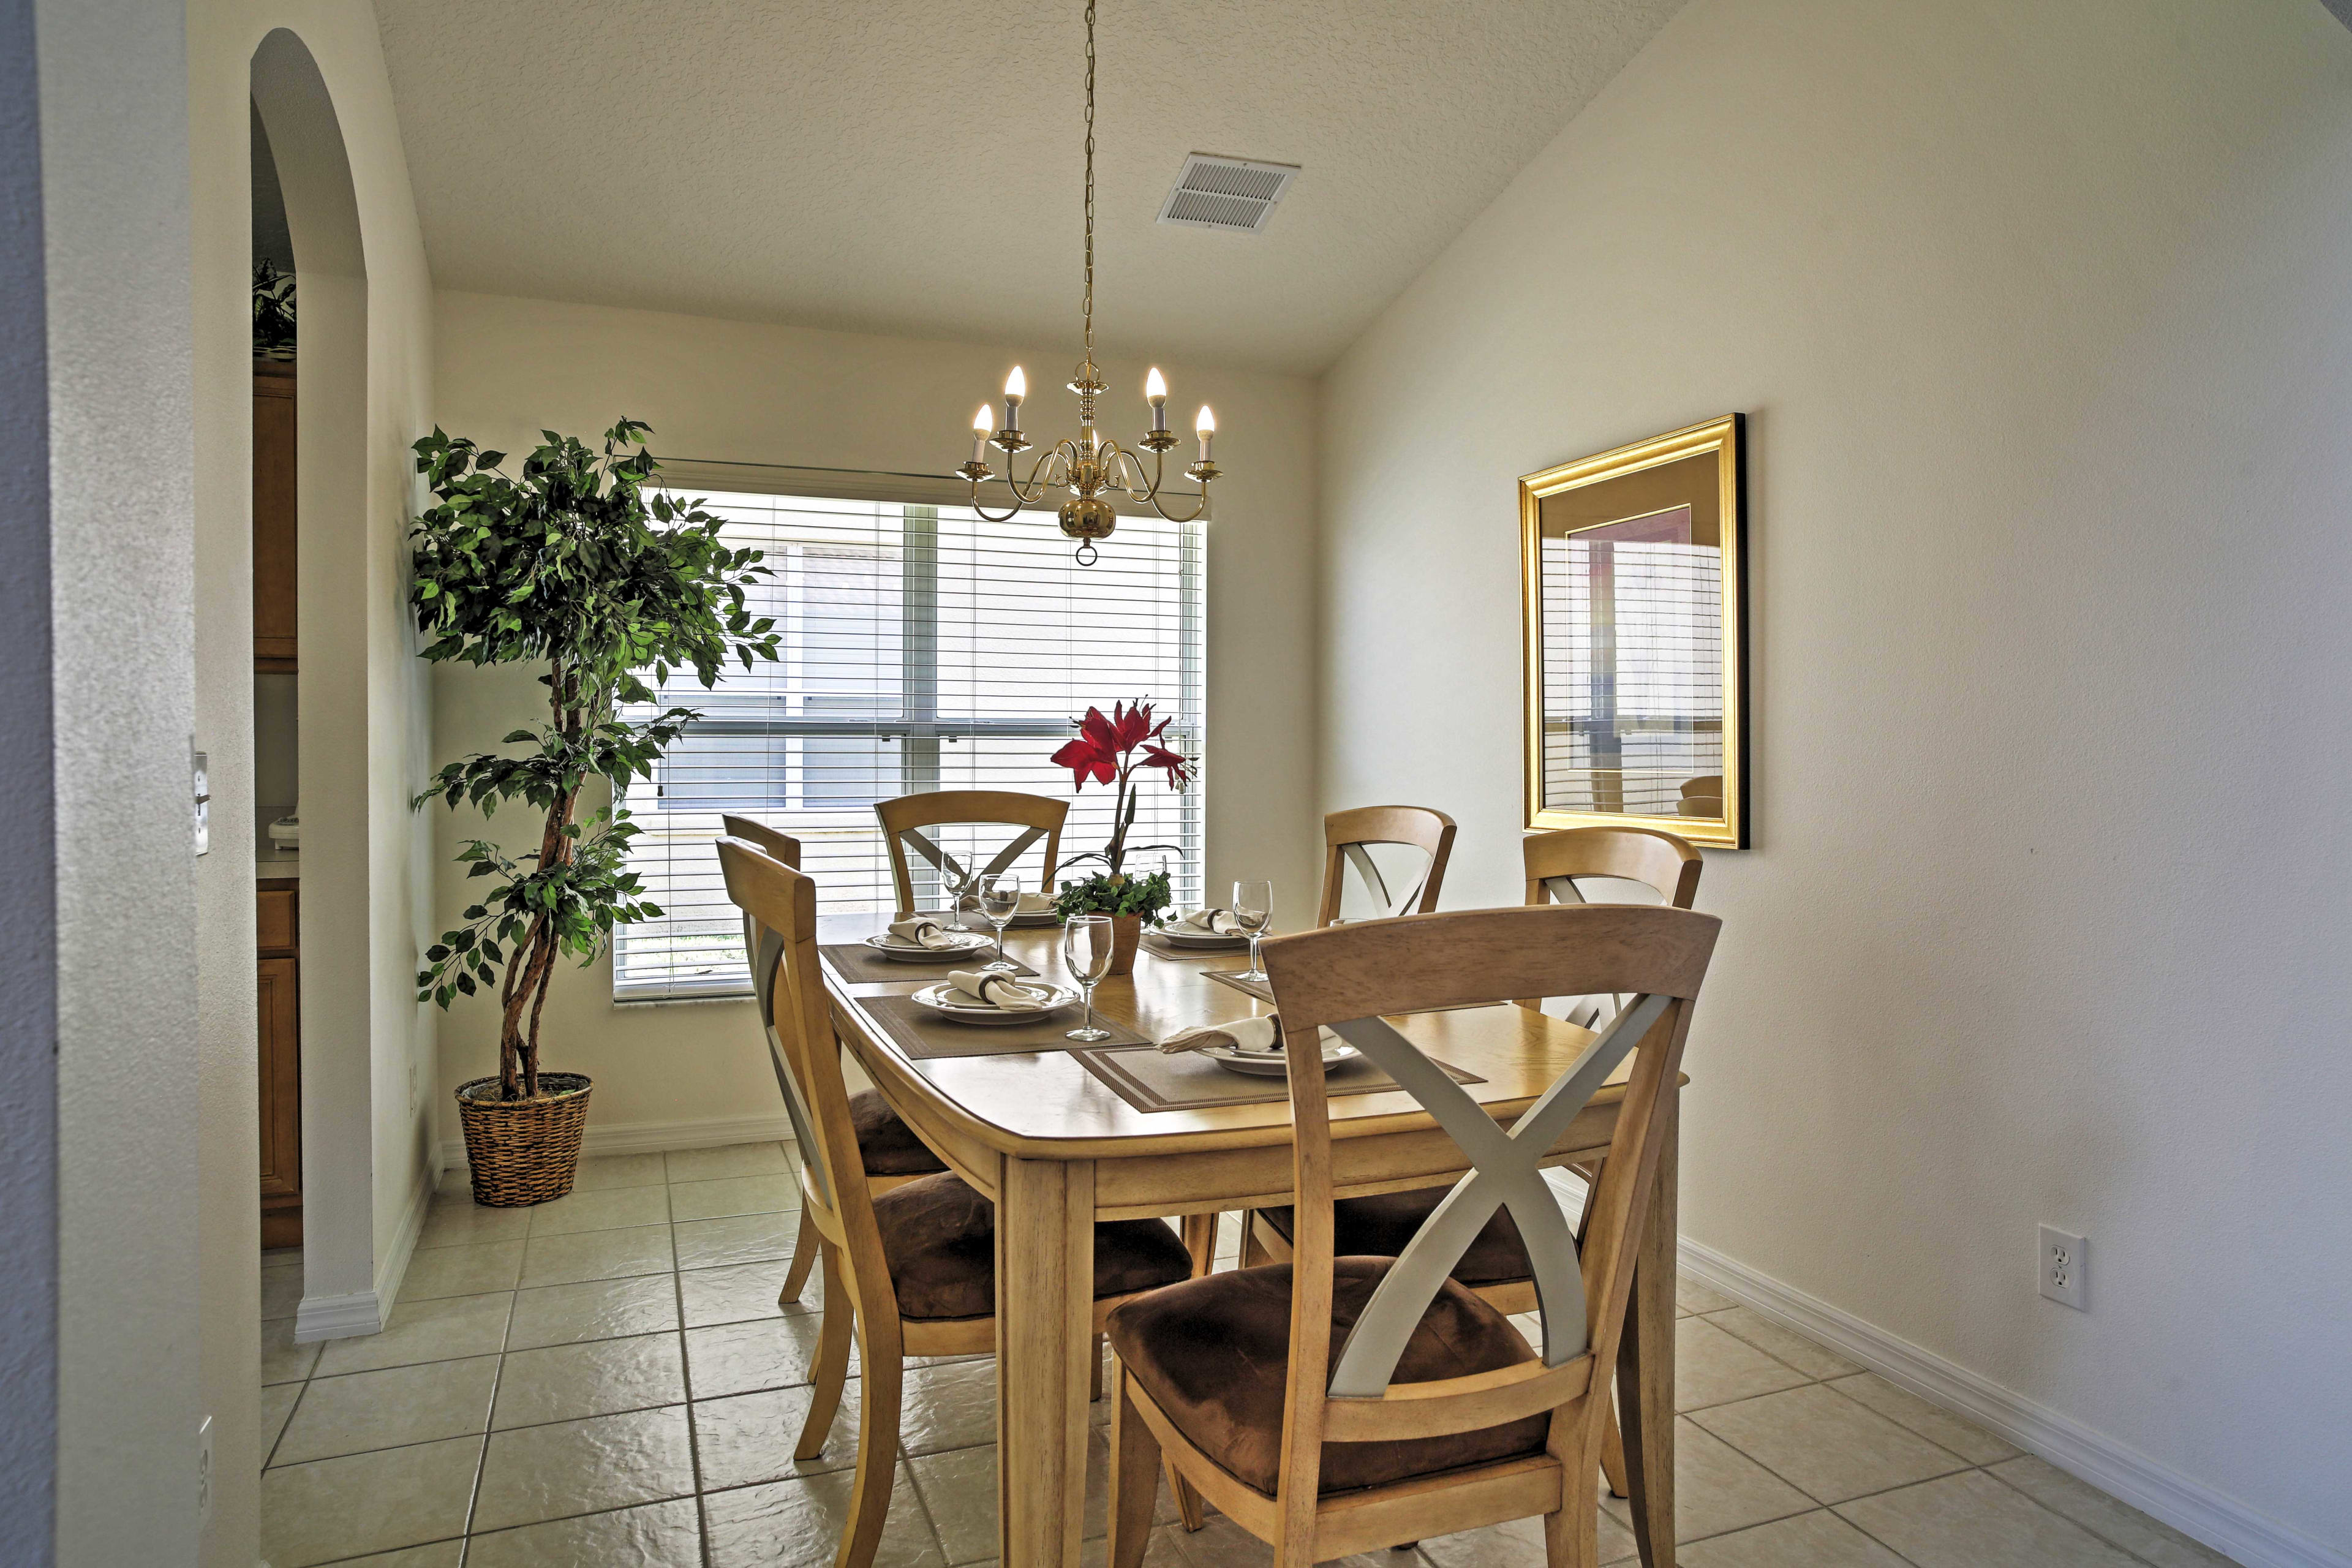 Enjoy a home-cooked feast with the whole group in this elegant dining area.